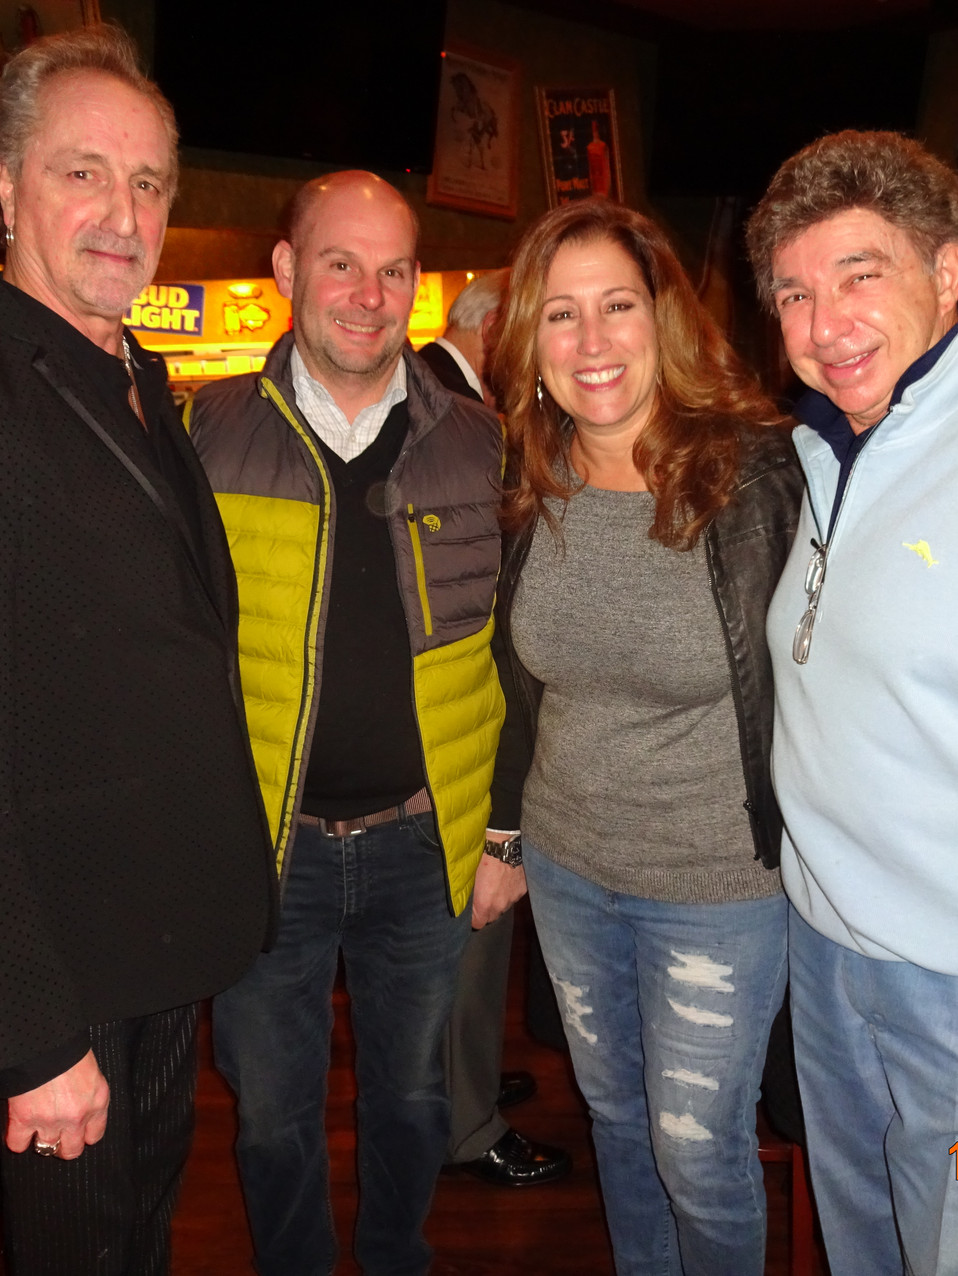 James Motgomery, Chris, Lisa & Dennis Serpone